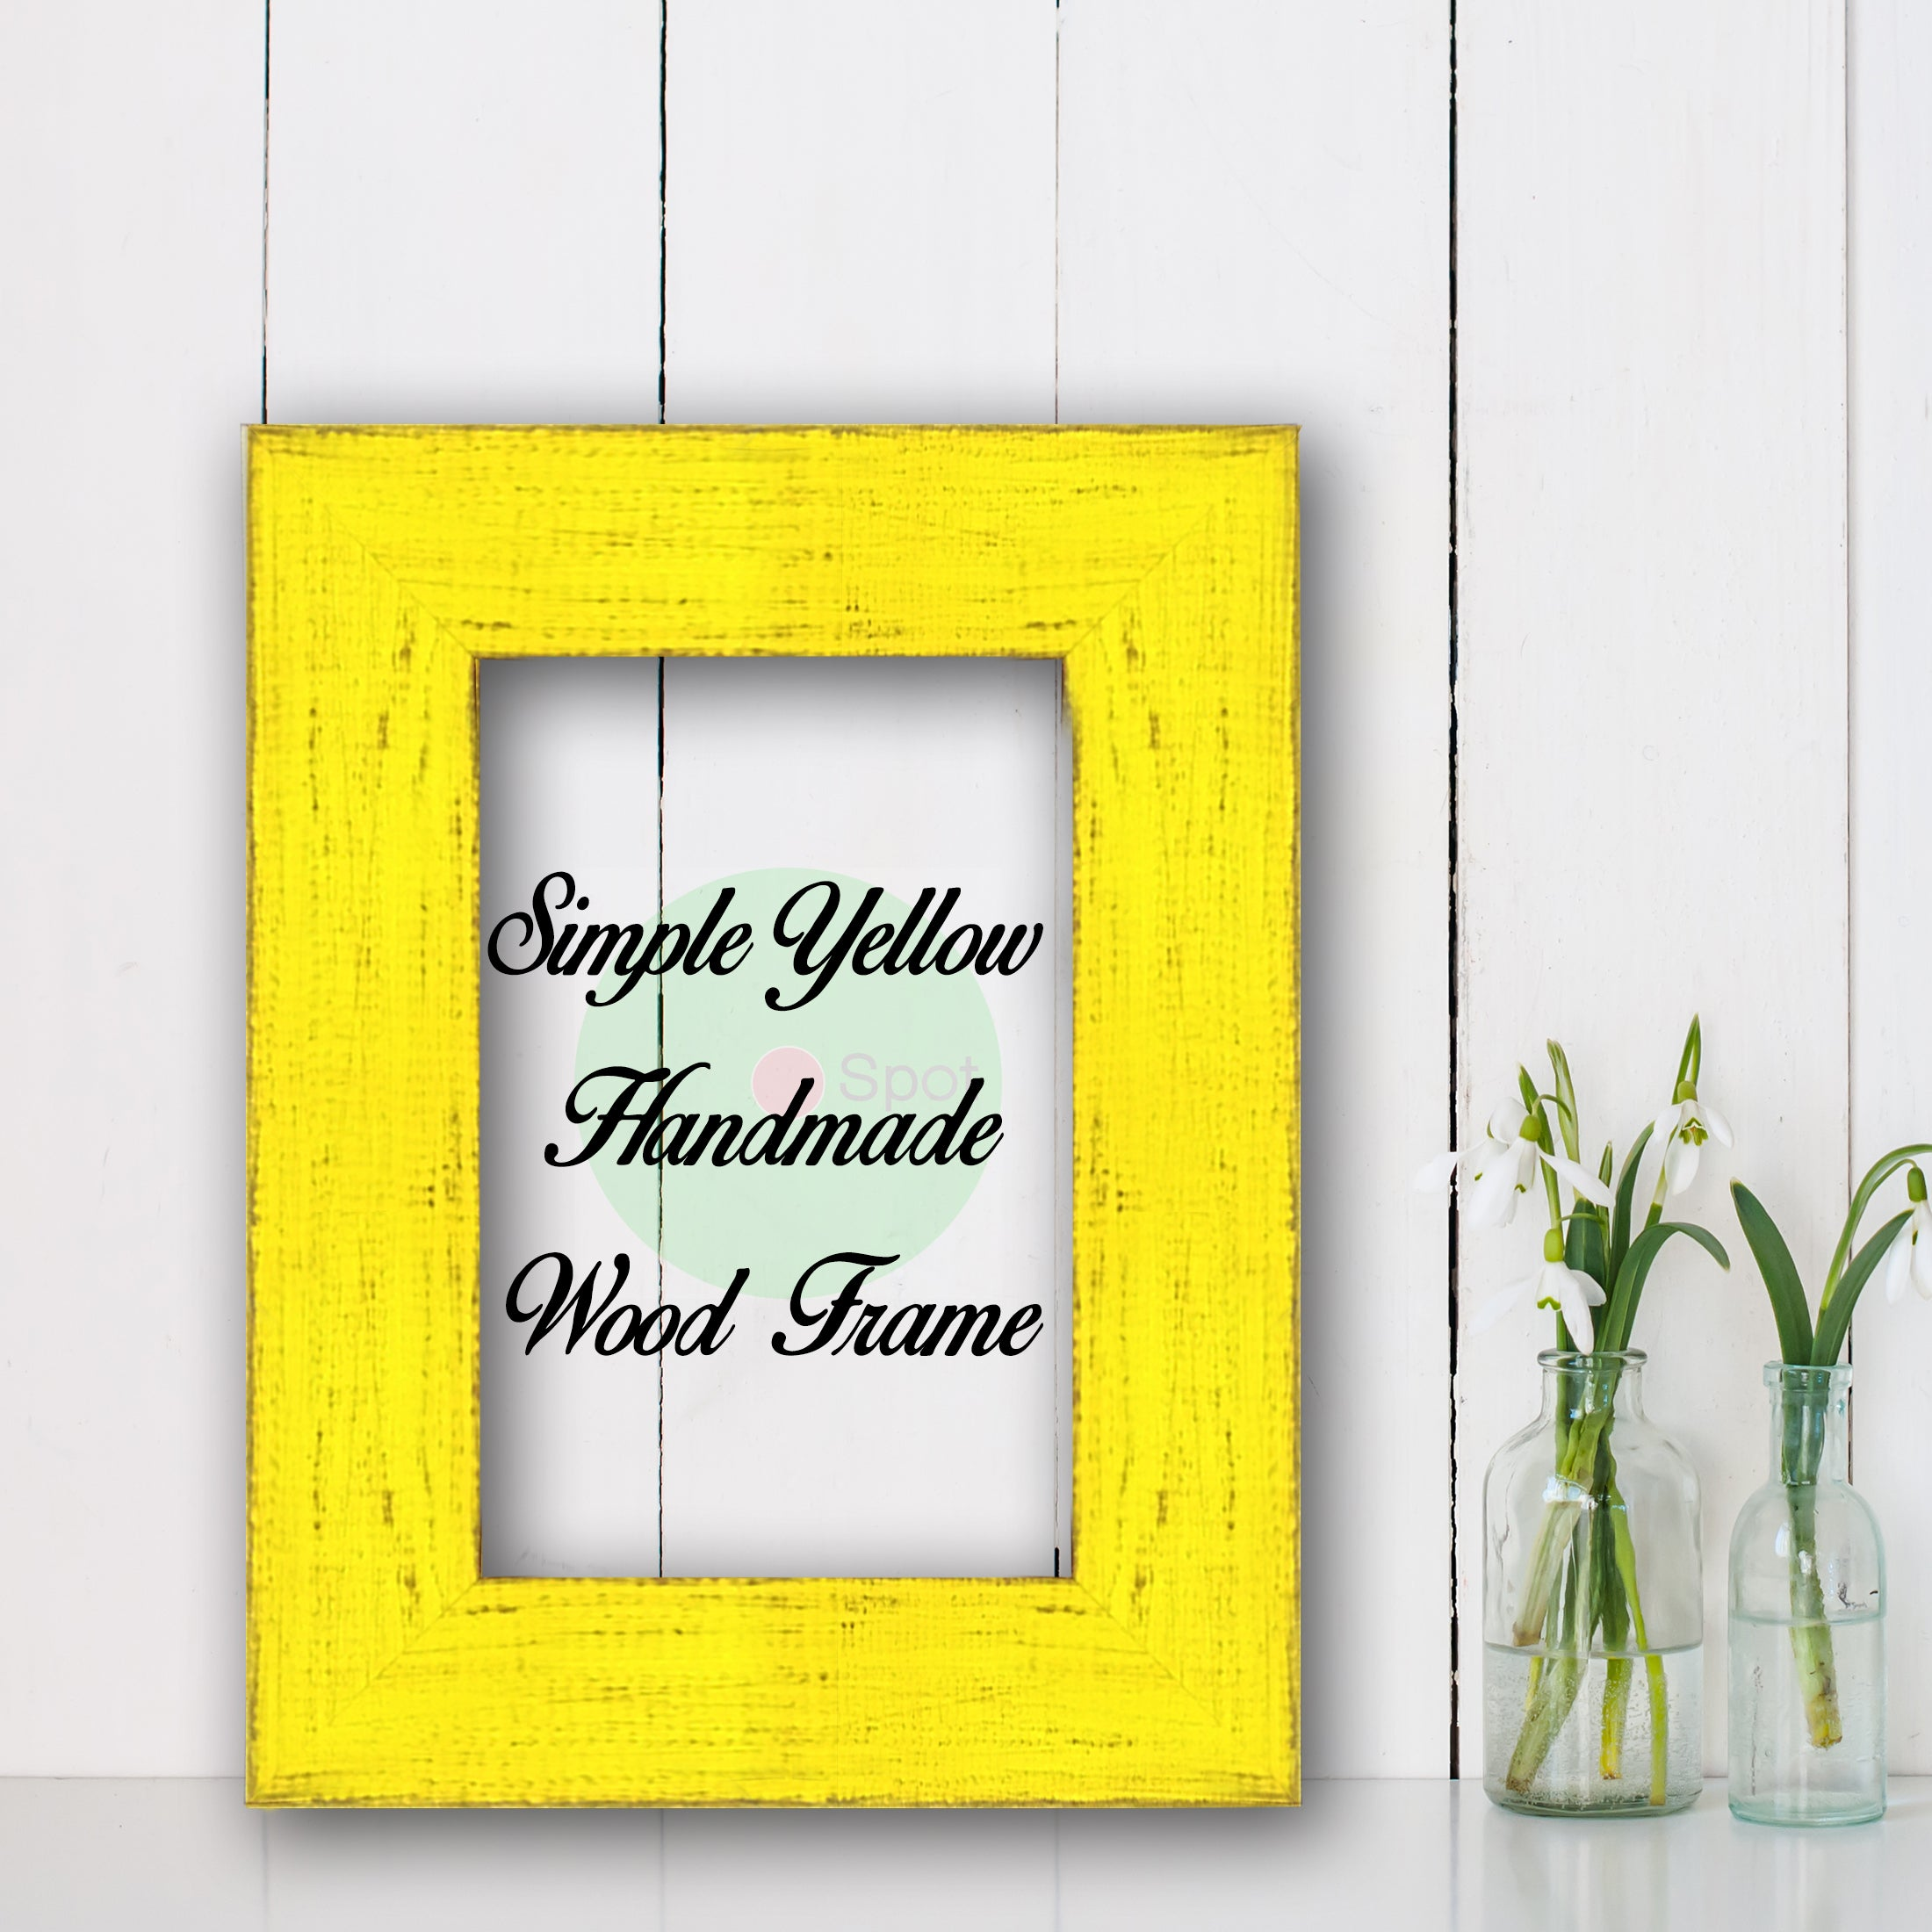 Simple Yellow Shabby Chic Home Decor Custom Frame Great for Farmhouse Vintage Rustic Wood Picture Frame